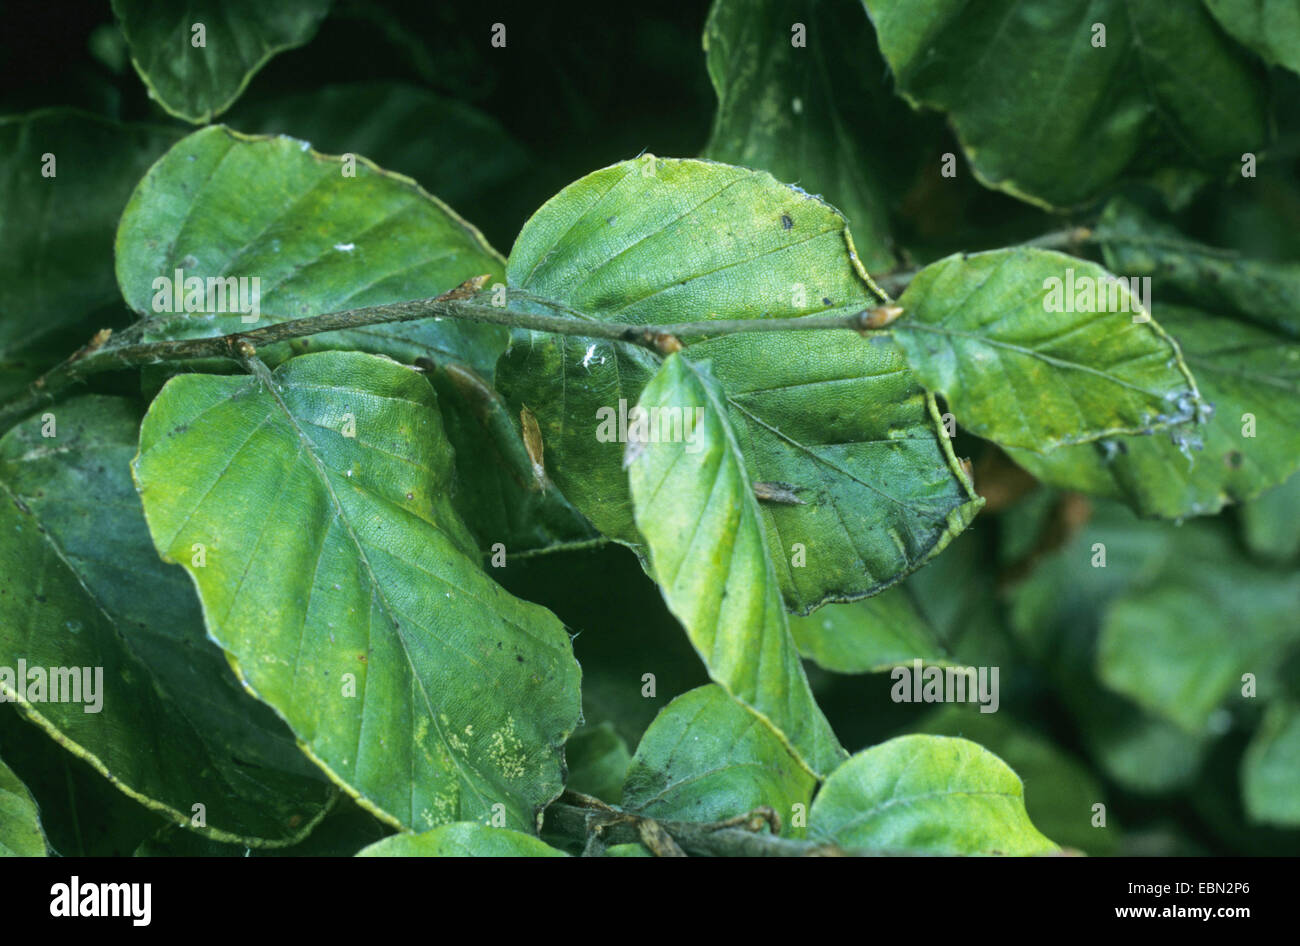 Woolly beech aphid (Phyllaphis fagi), damage of beech leaves, Germany - Stock Image